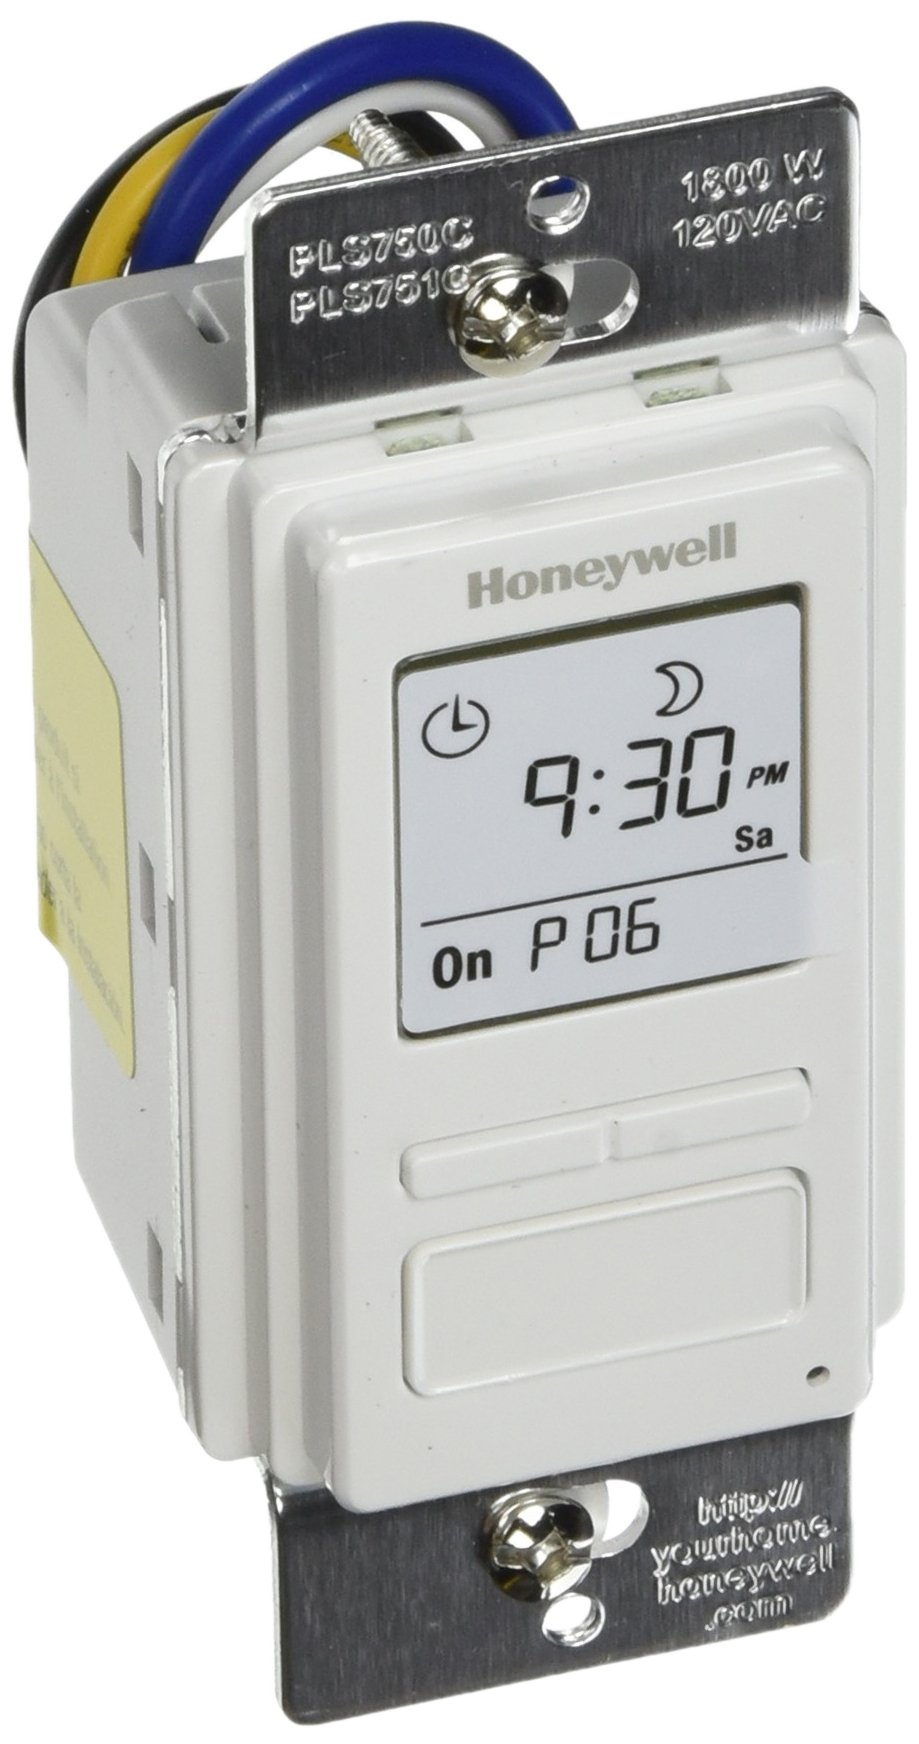 Honeywell PLS750C1000 Switch Sunrise Sunset